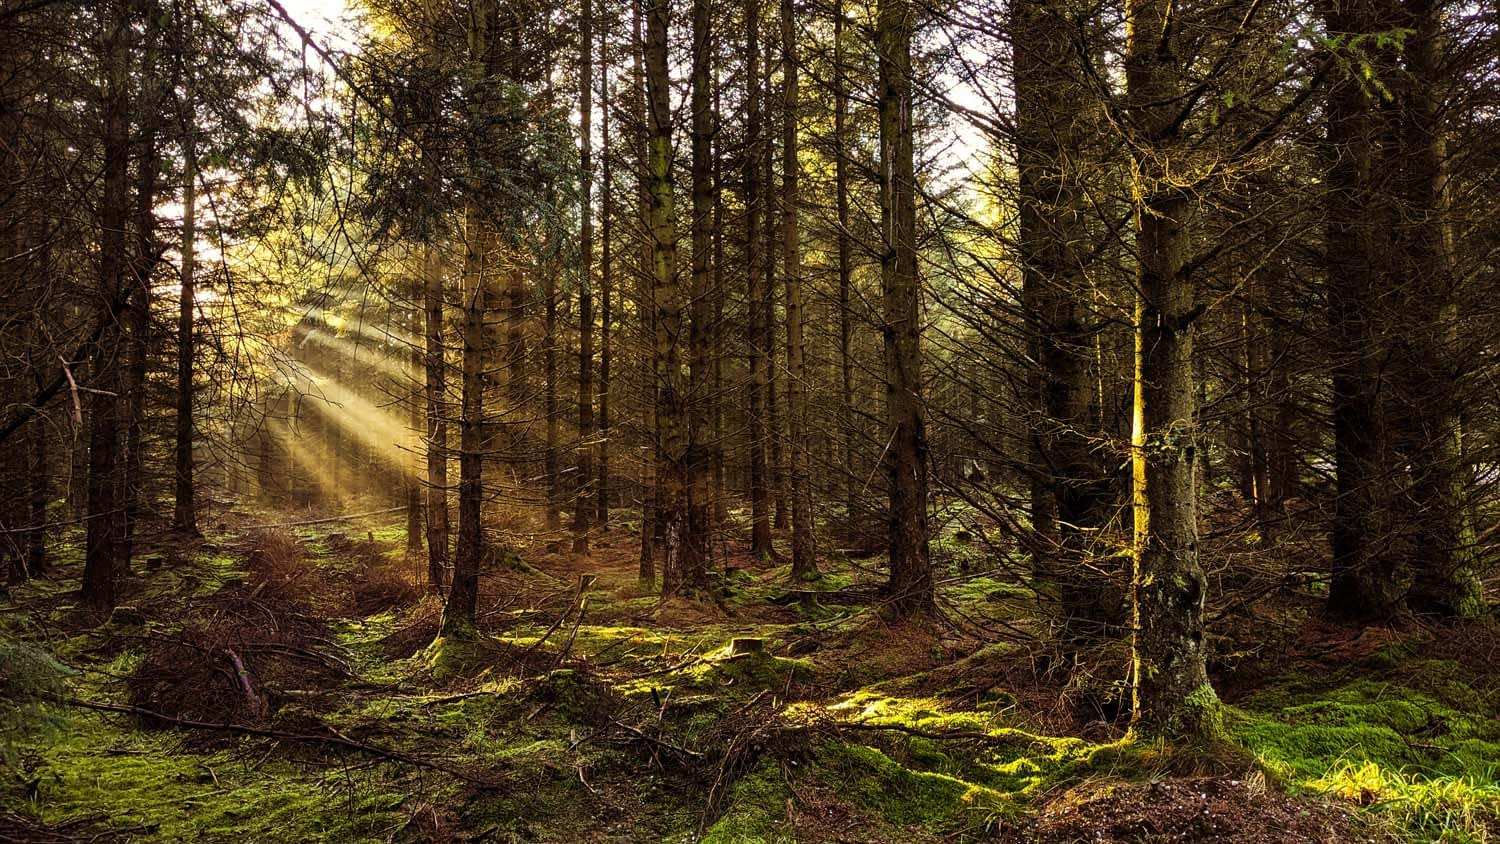 The sun peeking in through the forest